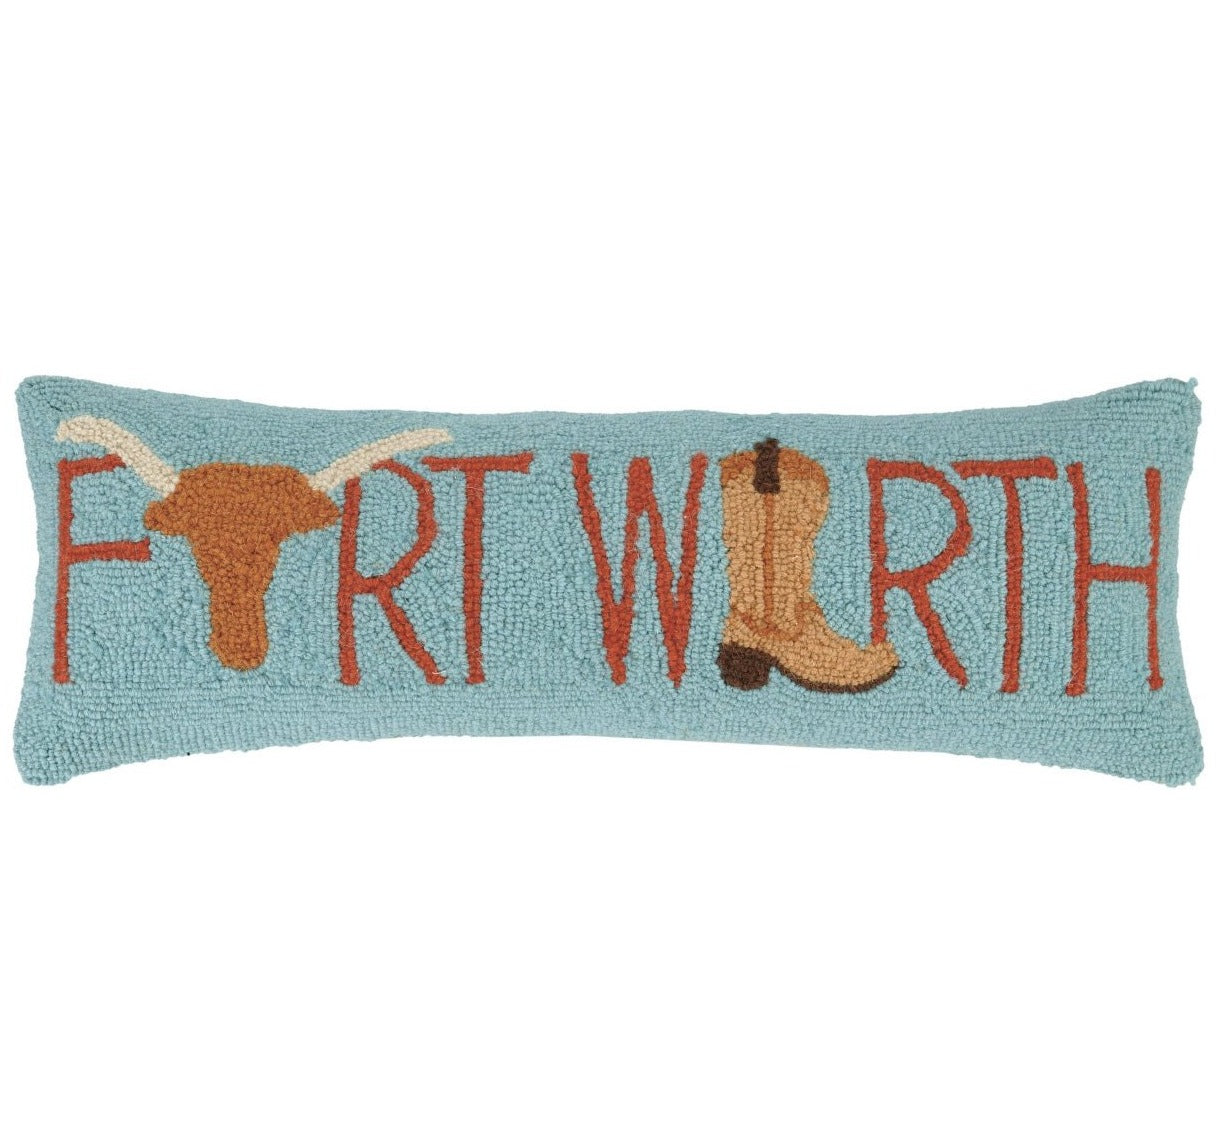 Fort Worth Pillow